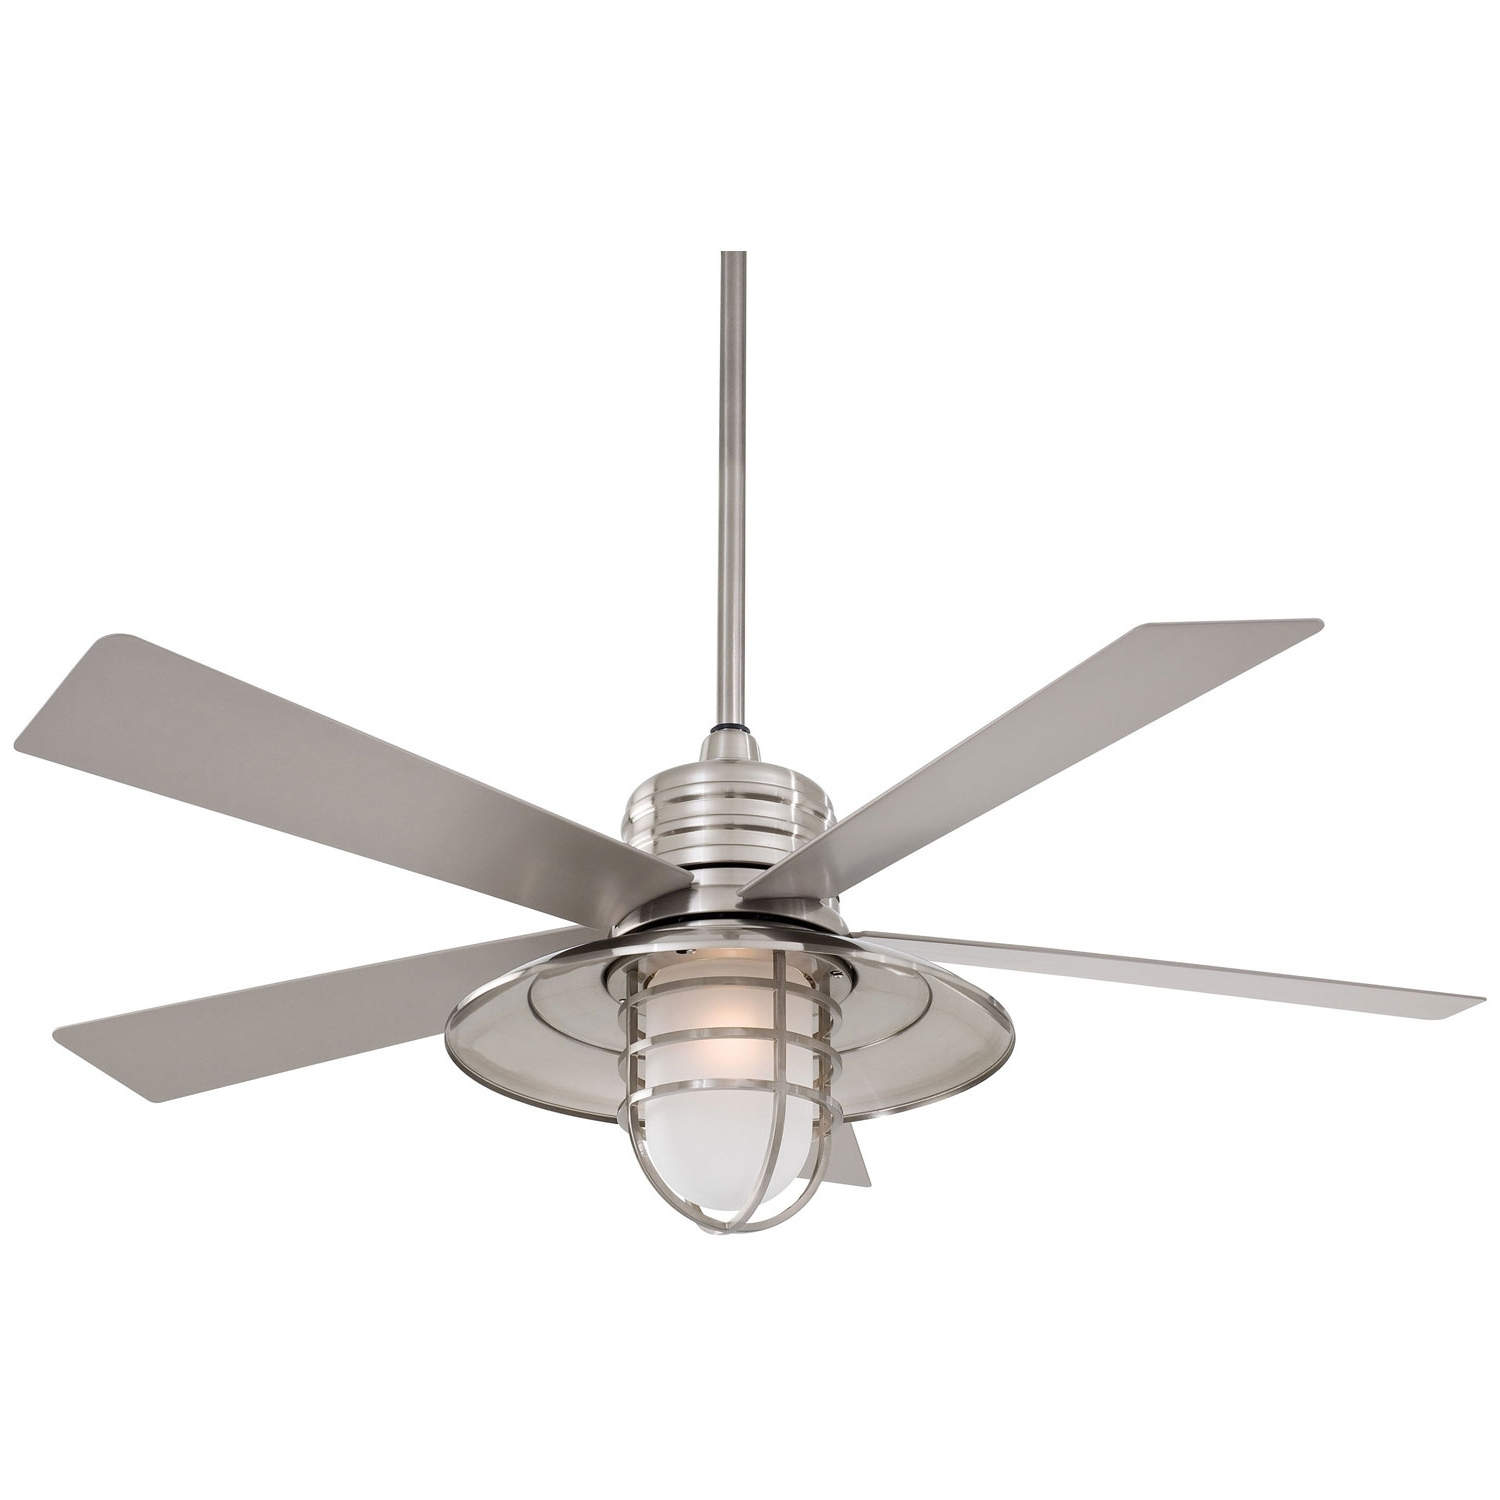 20 Inspirations of Nickel Outdoor Ceiling Fans